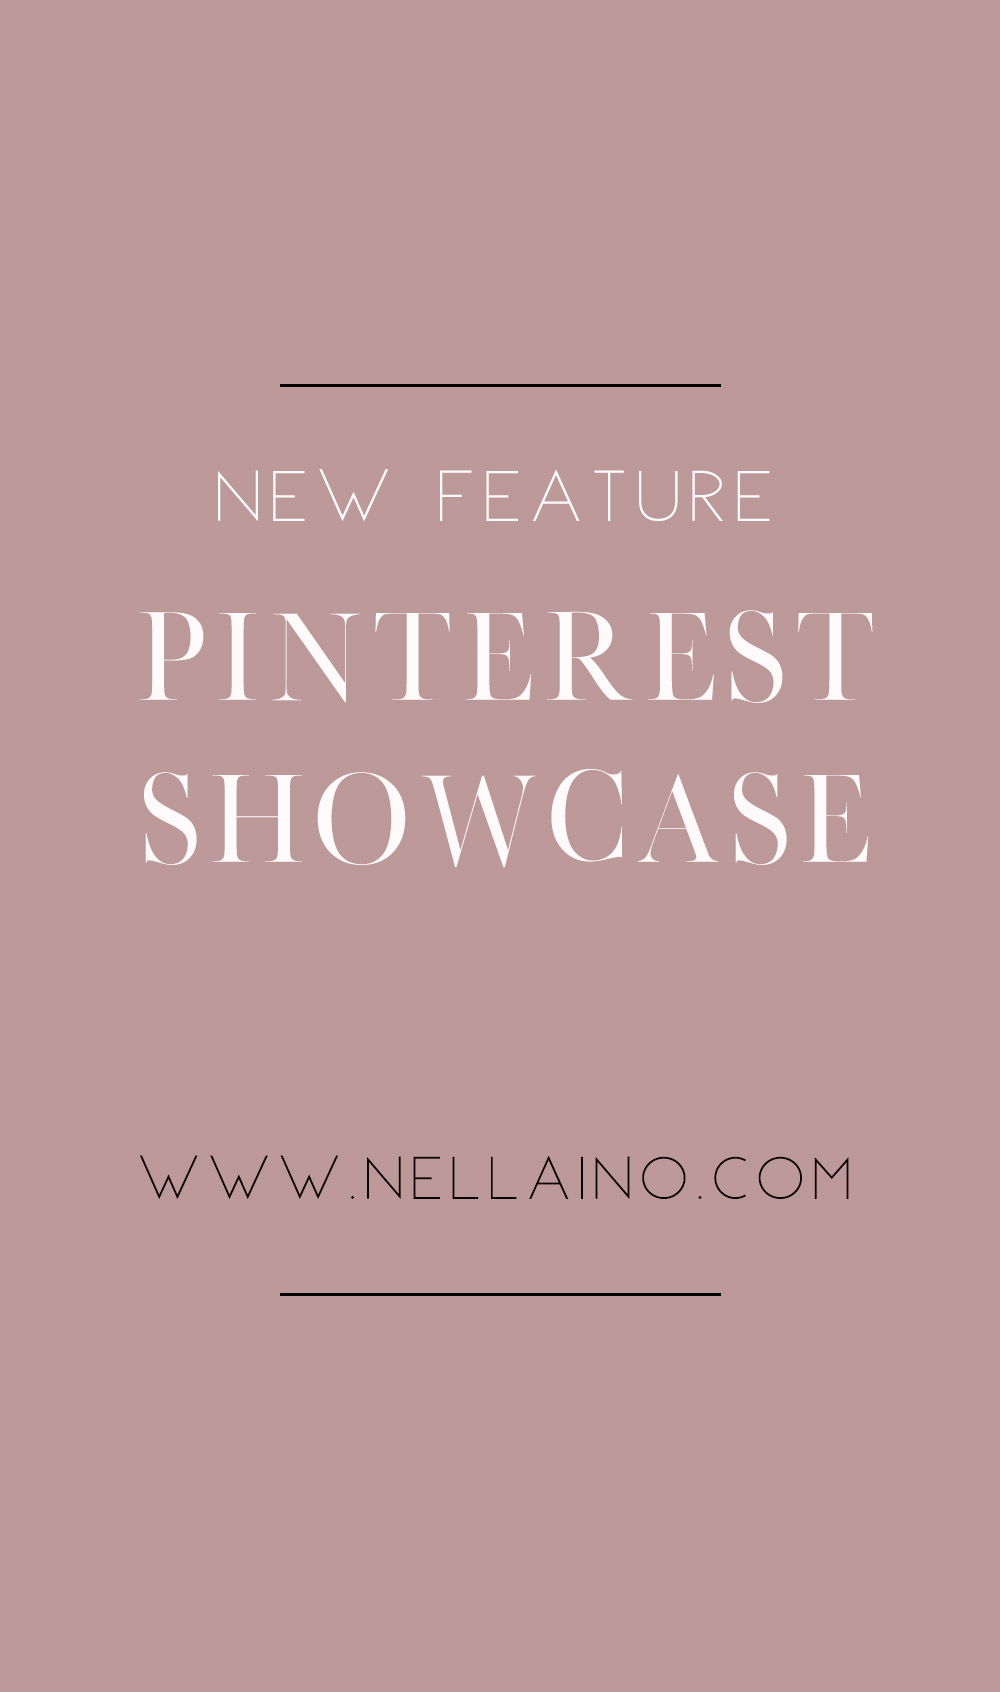 New Pinterest showcase feature and other updates to more coherent Pinterest and easier Pinterest experience. Visit www.nellaino.com/pinterest-showcase to read more!